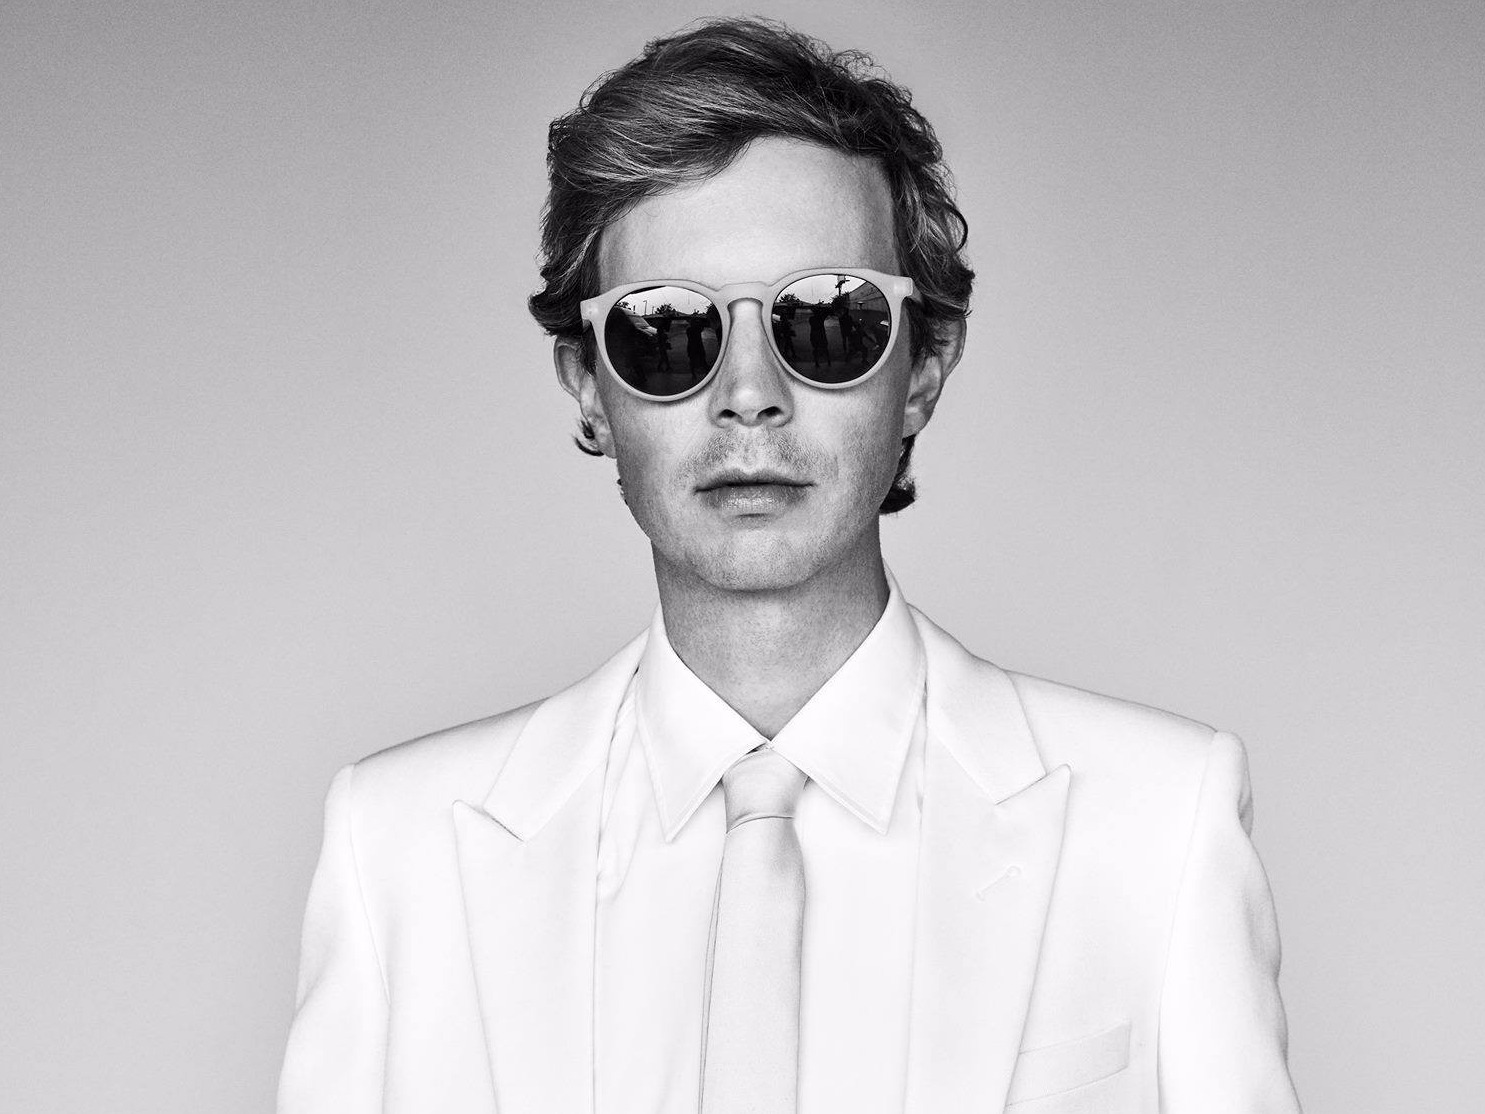 13 Songs from 13 Beck Albums